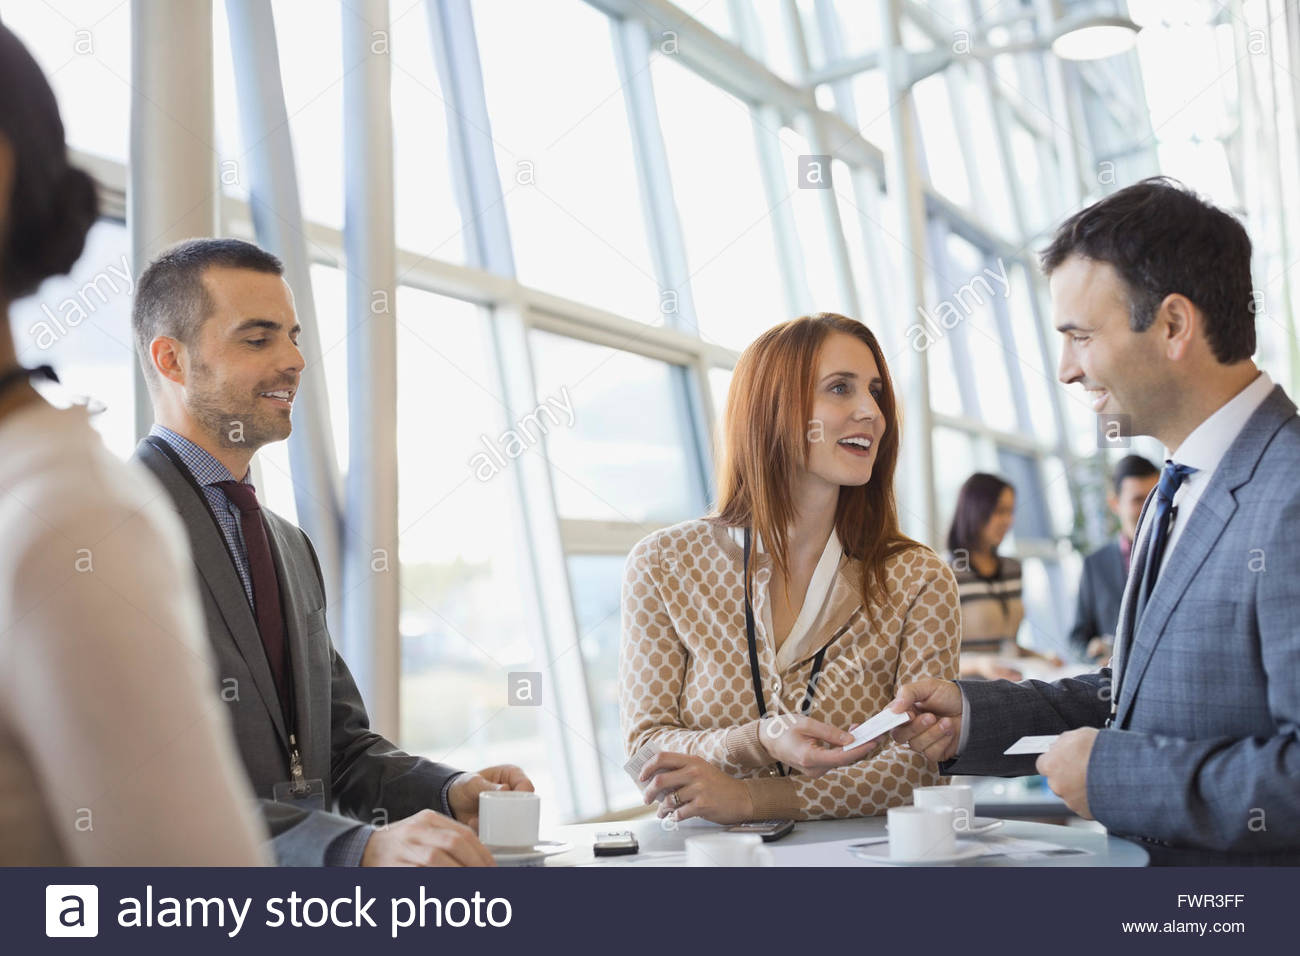 Business people exchanging business cards at conference - Stock Image